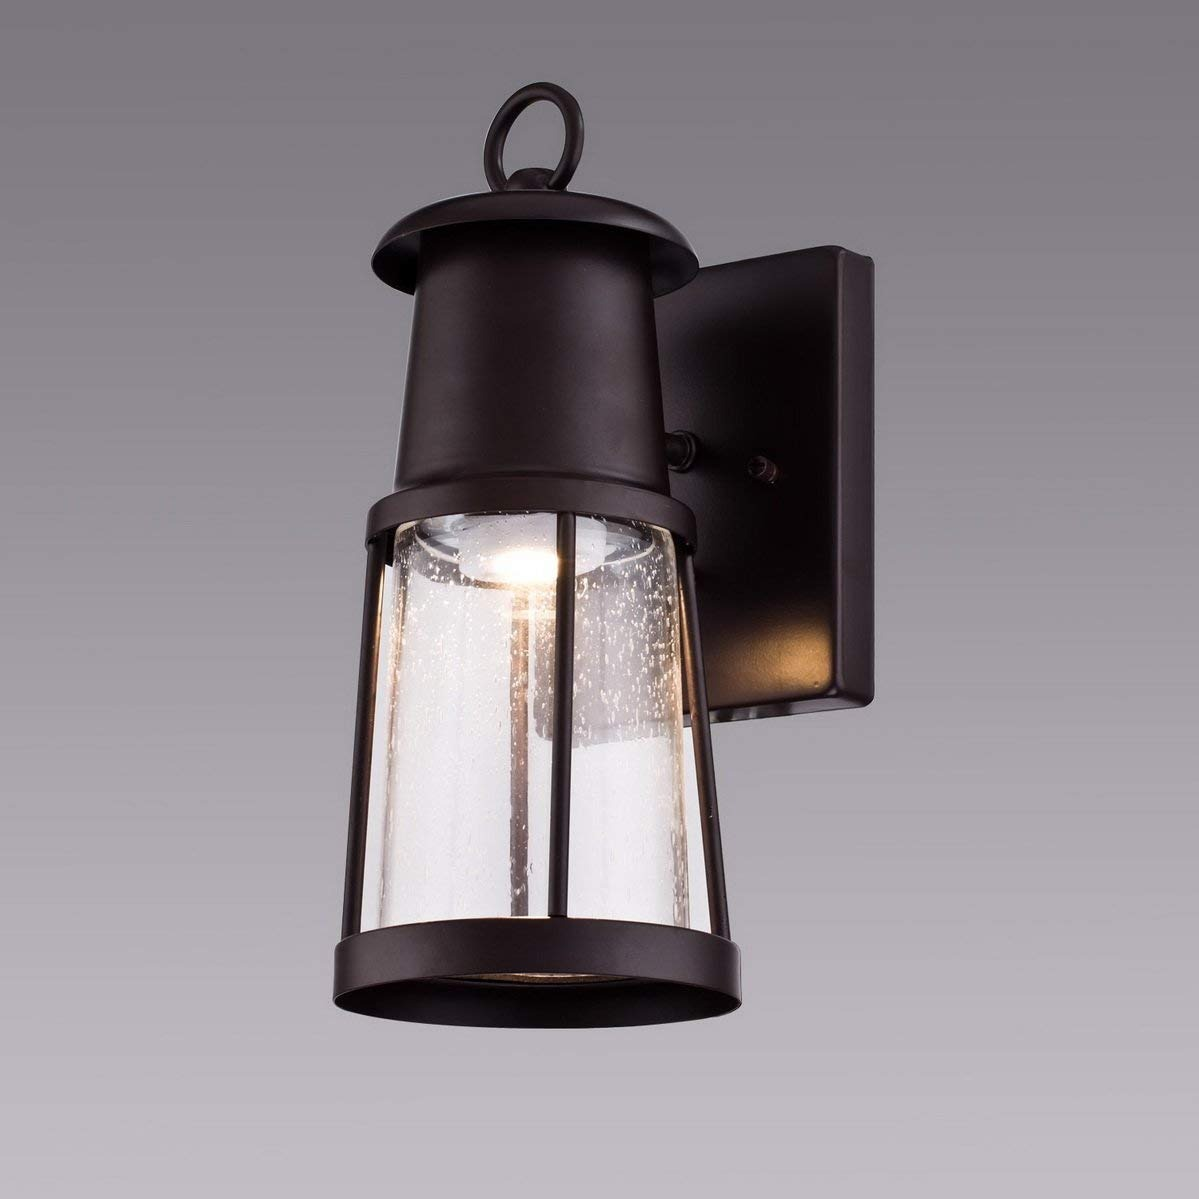 Outdoor Wall Light Led Sconce Lamp